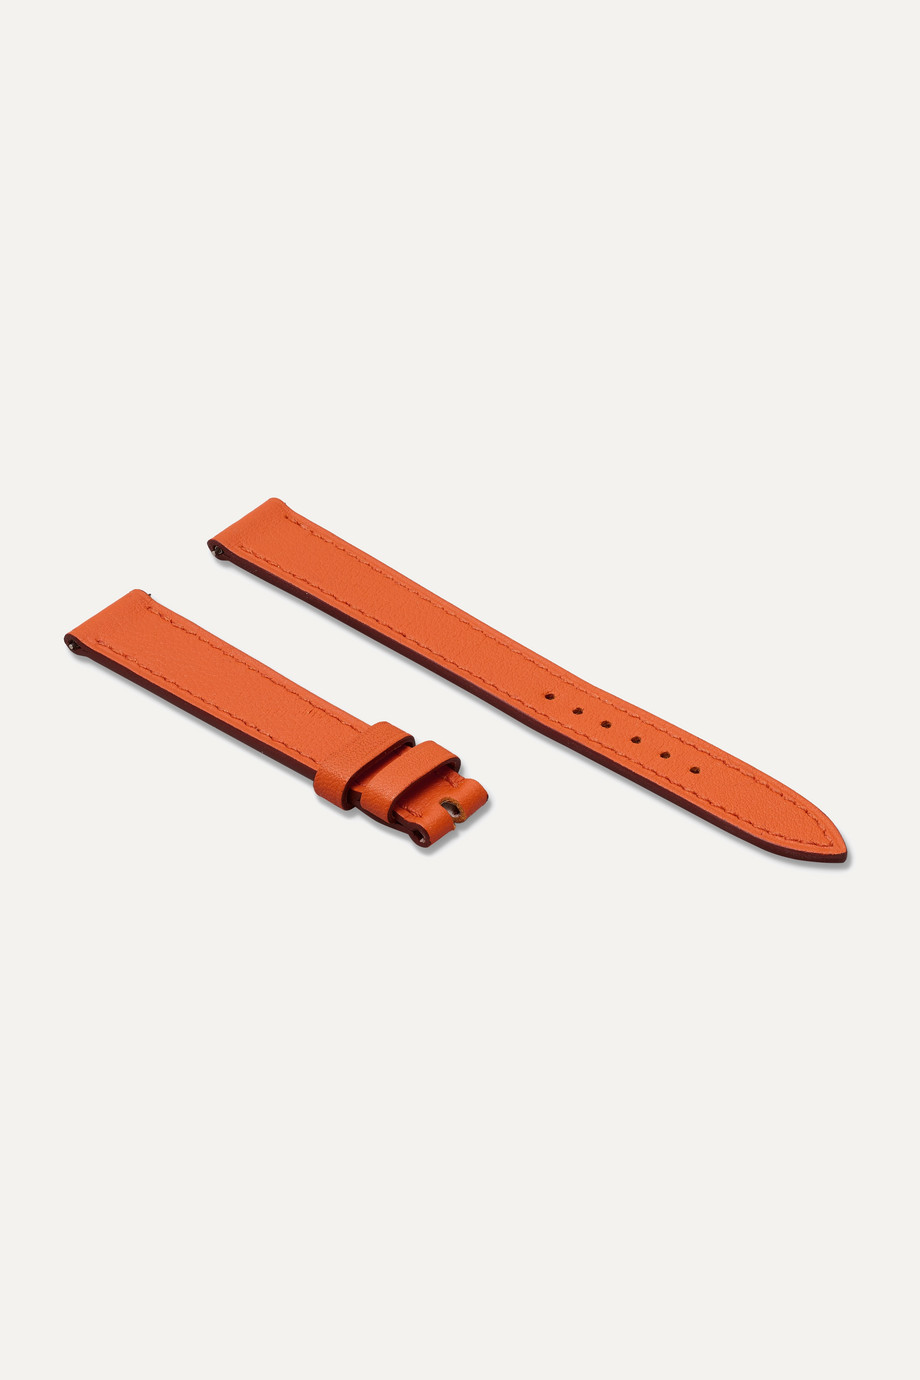 HERMÈS TIMEPIECES Cape Cod Single Tour 23mm leather watch strap